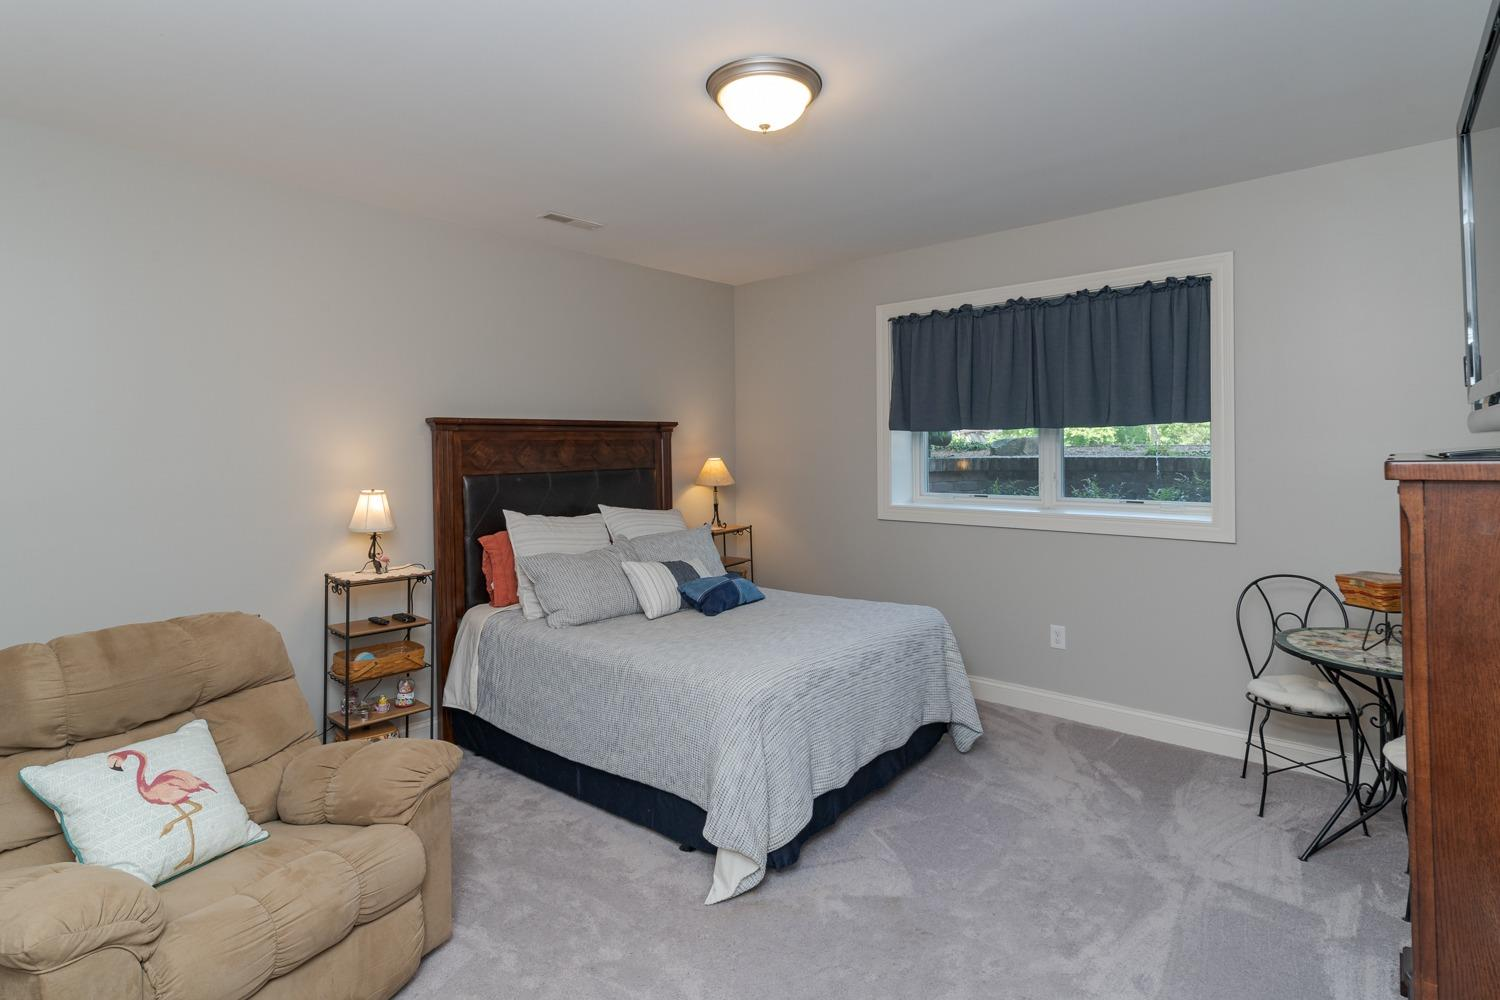 Lower level bedroom (with adjoining full bathroom).